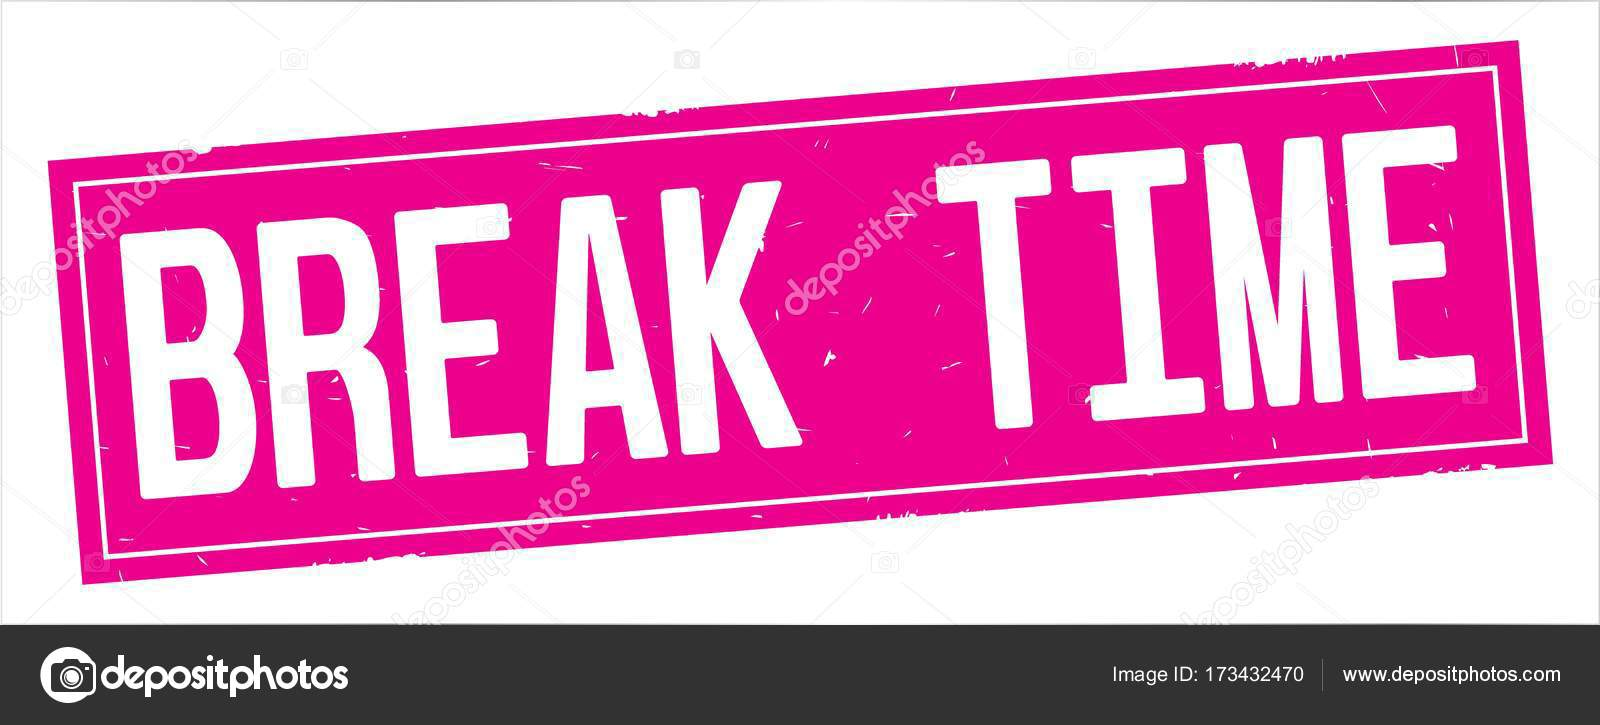 BREAK TIME Text On Full Pink Rectangle Vintage Textured Stamp Sign Photo By Outchill